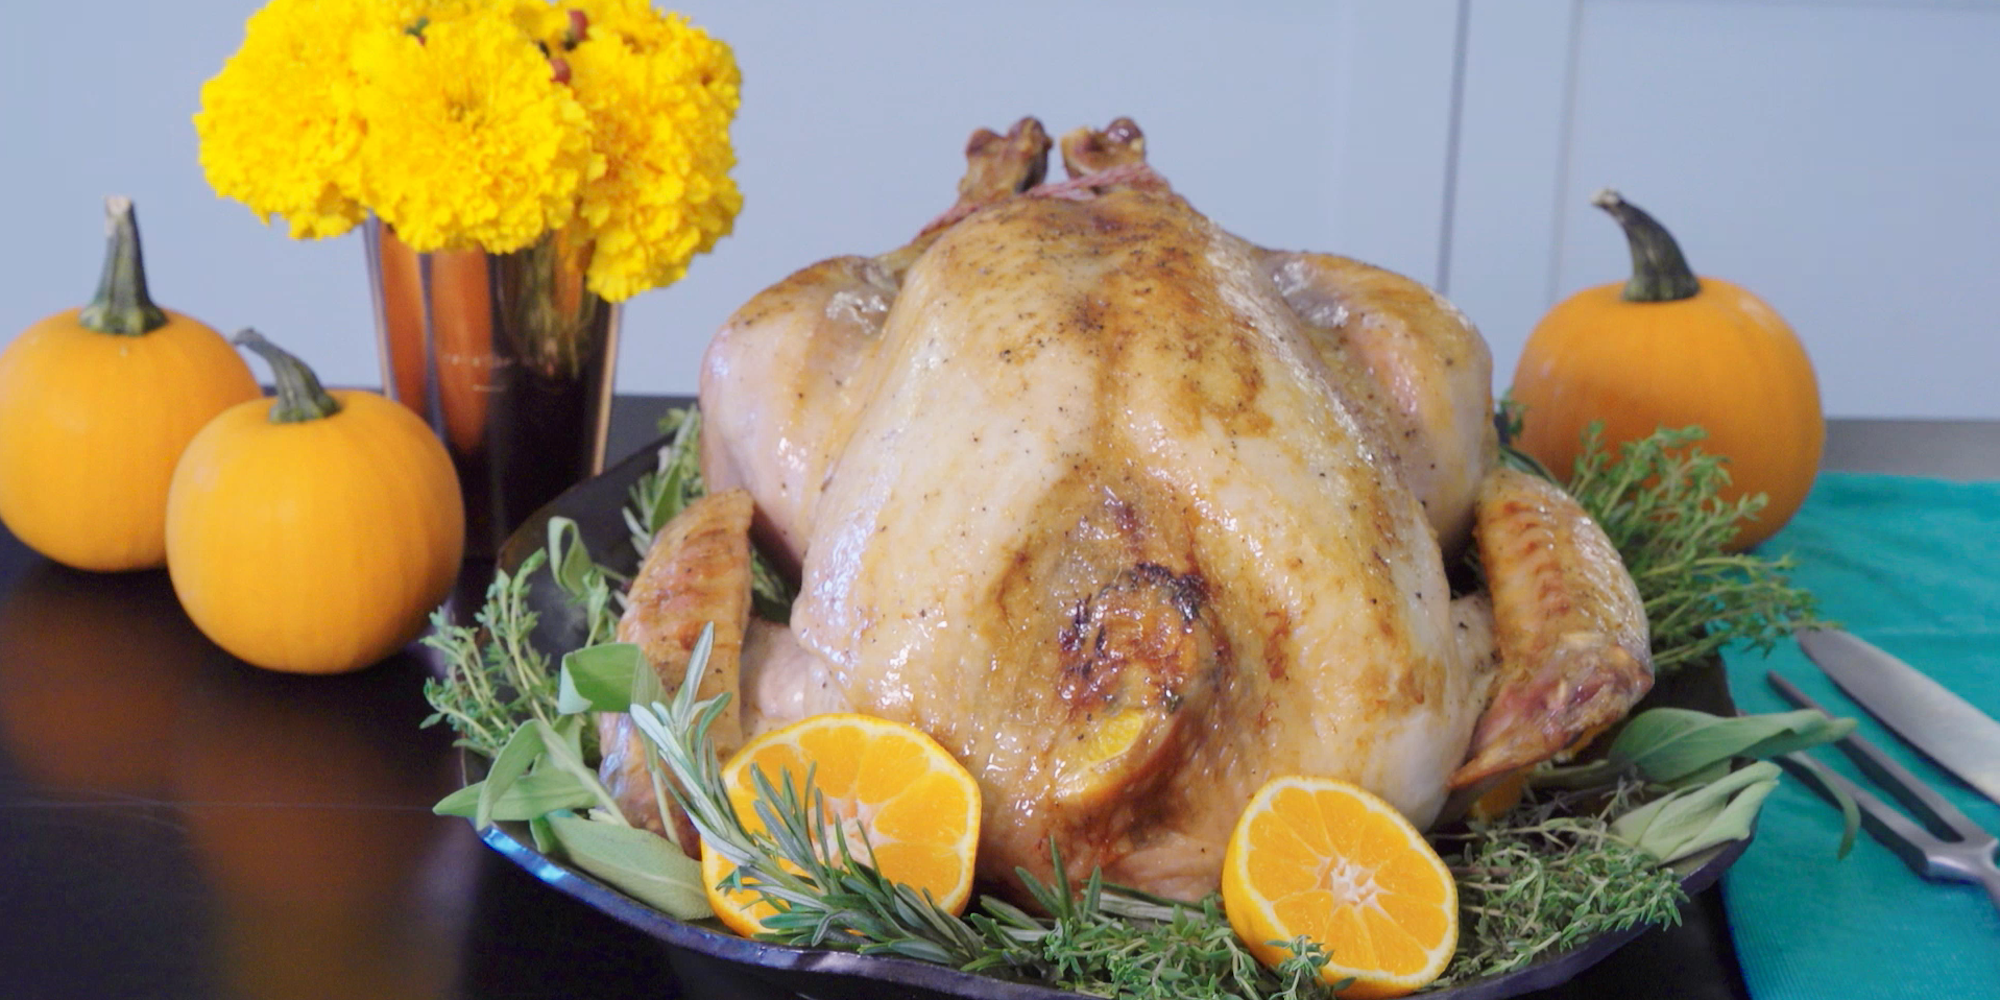 How to Perfectly Prepare a Turkey This Thanksgiving, According to Test Kitchen Experts